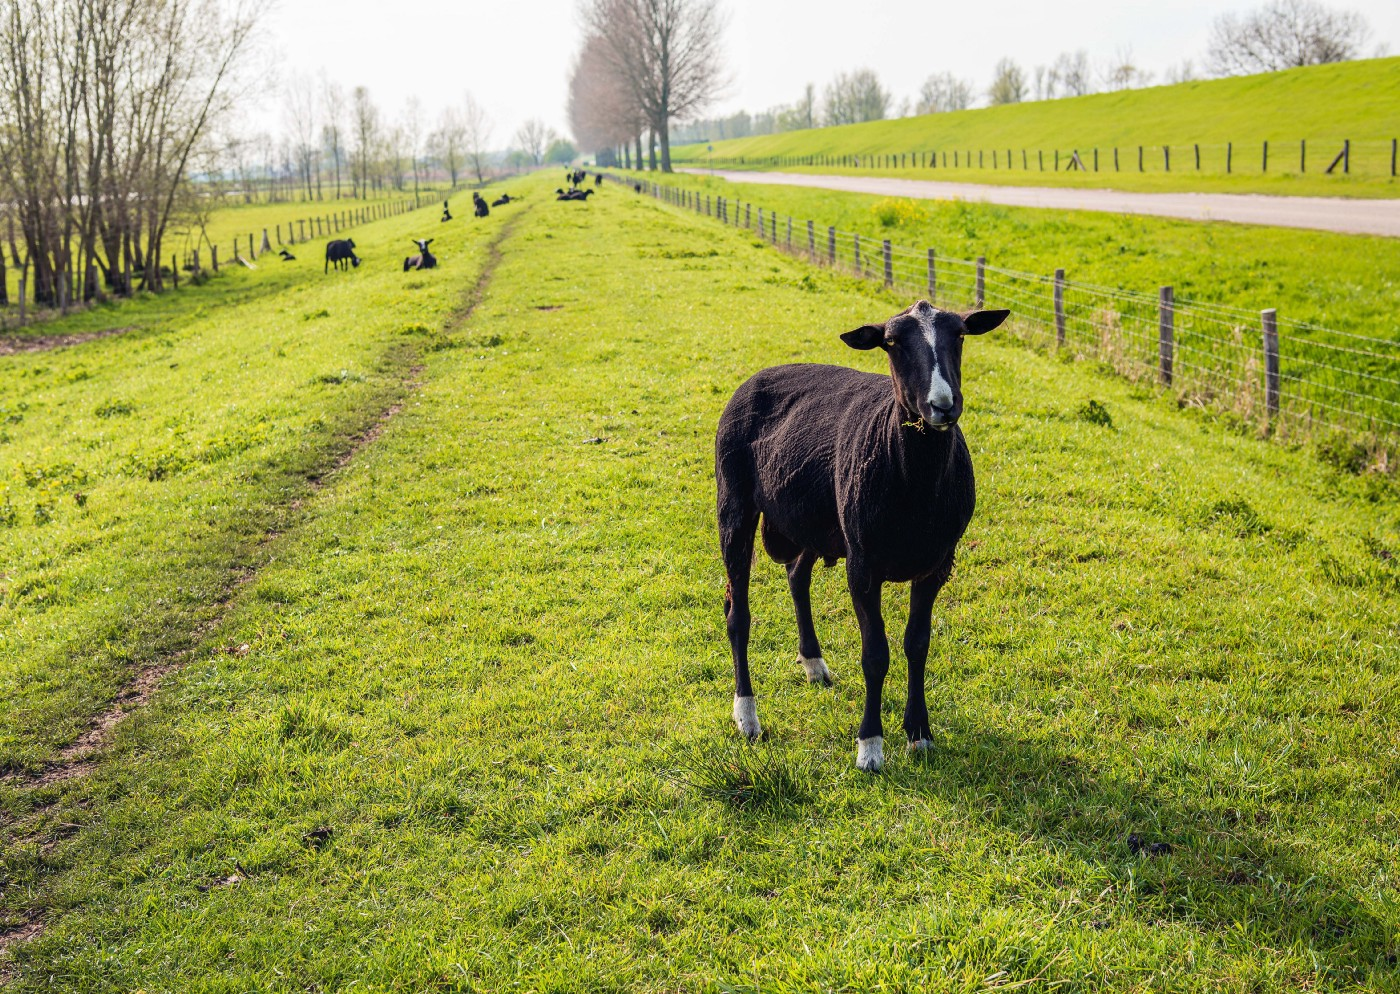 A newly shorn black sheep stands in the foreground of a green pasture, looking at the camera. There is A fence to its right and trees and more sheep lying down in the back left.